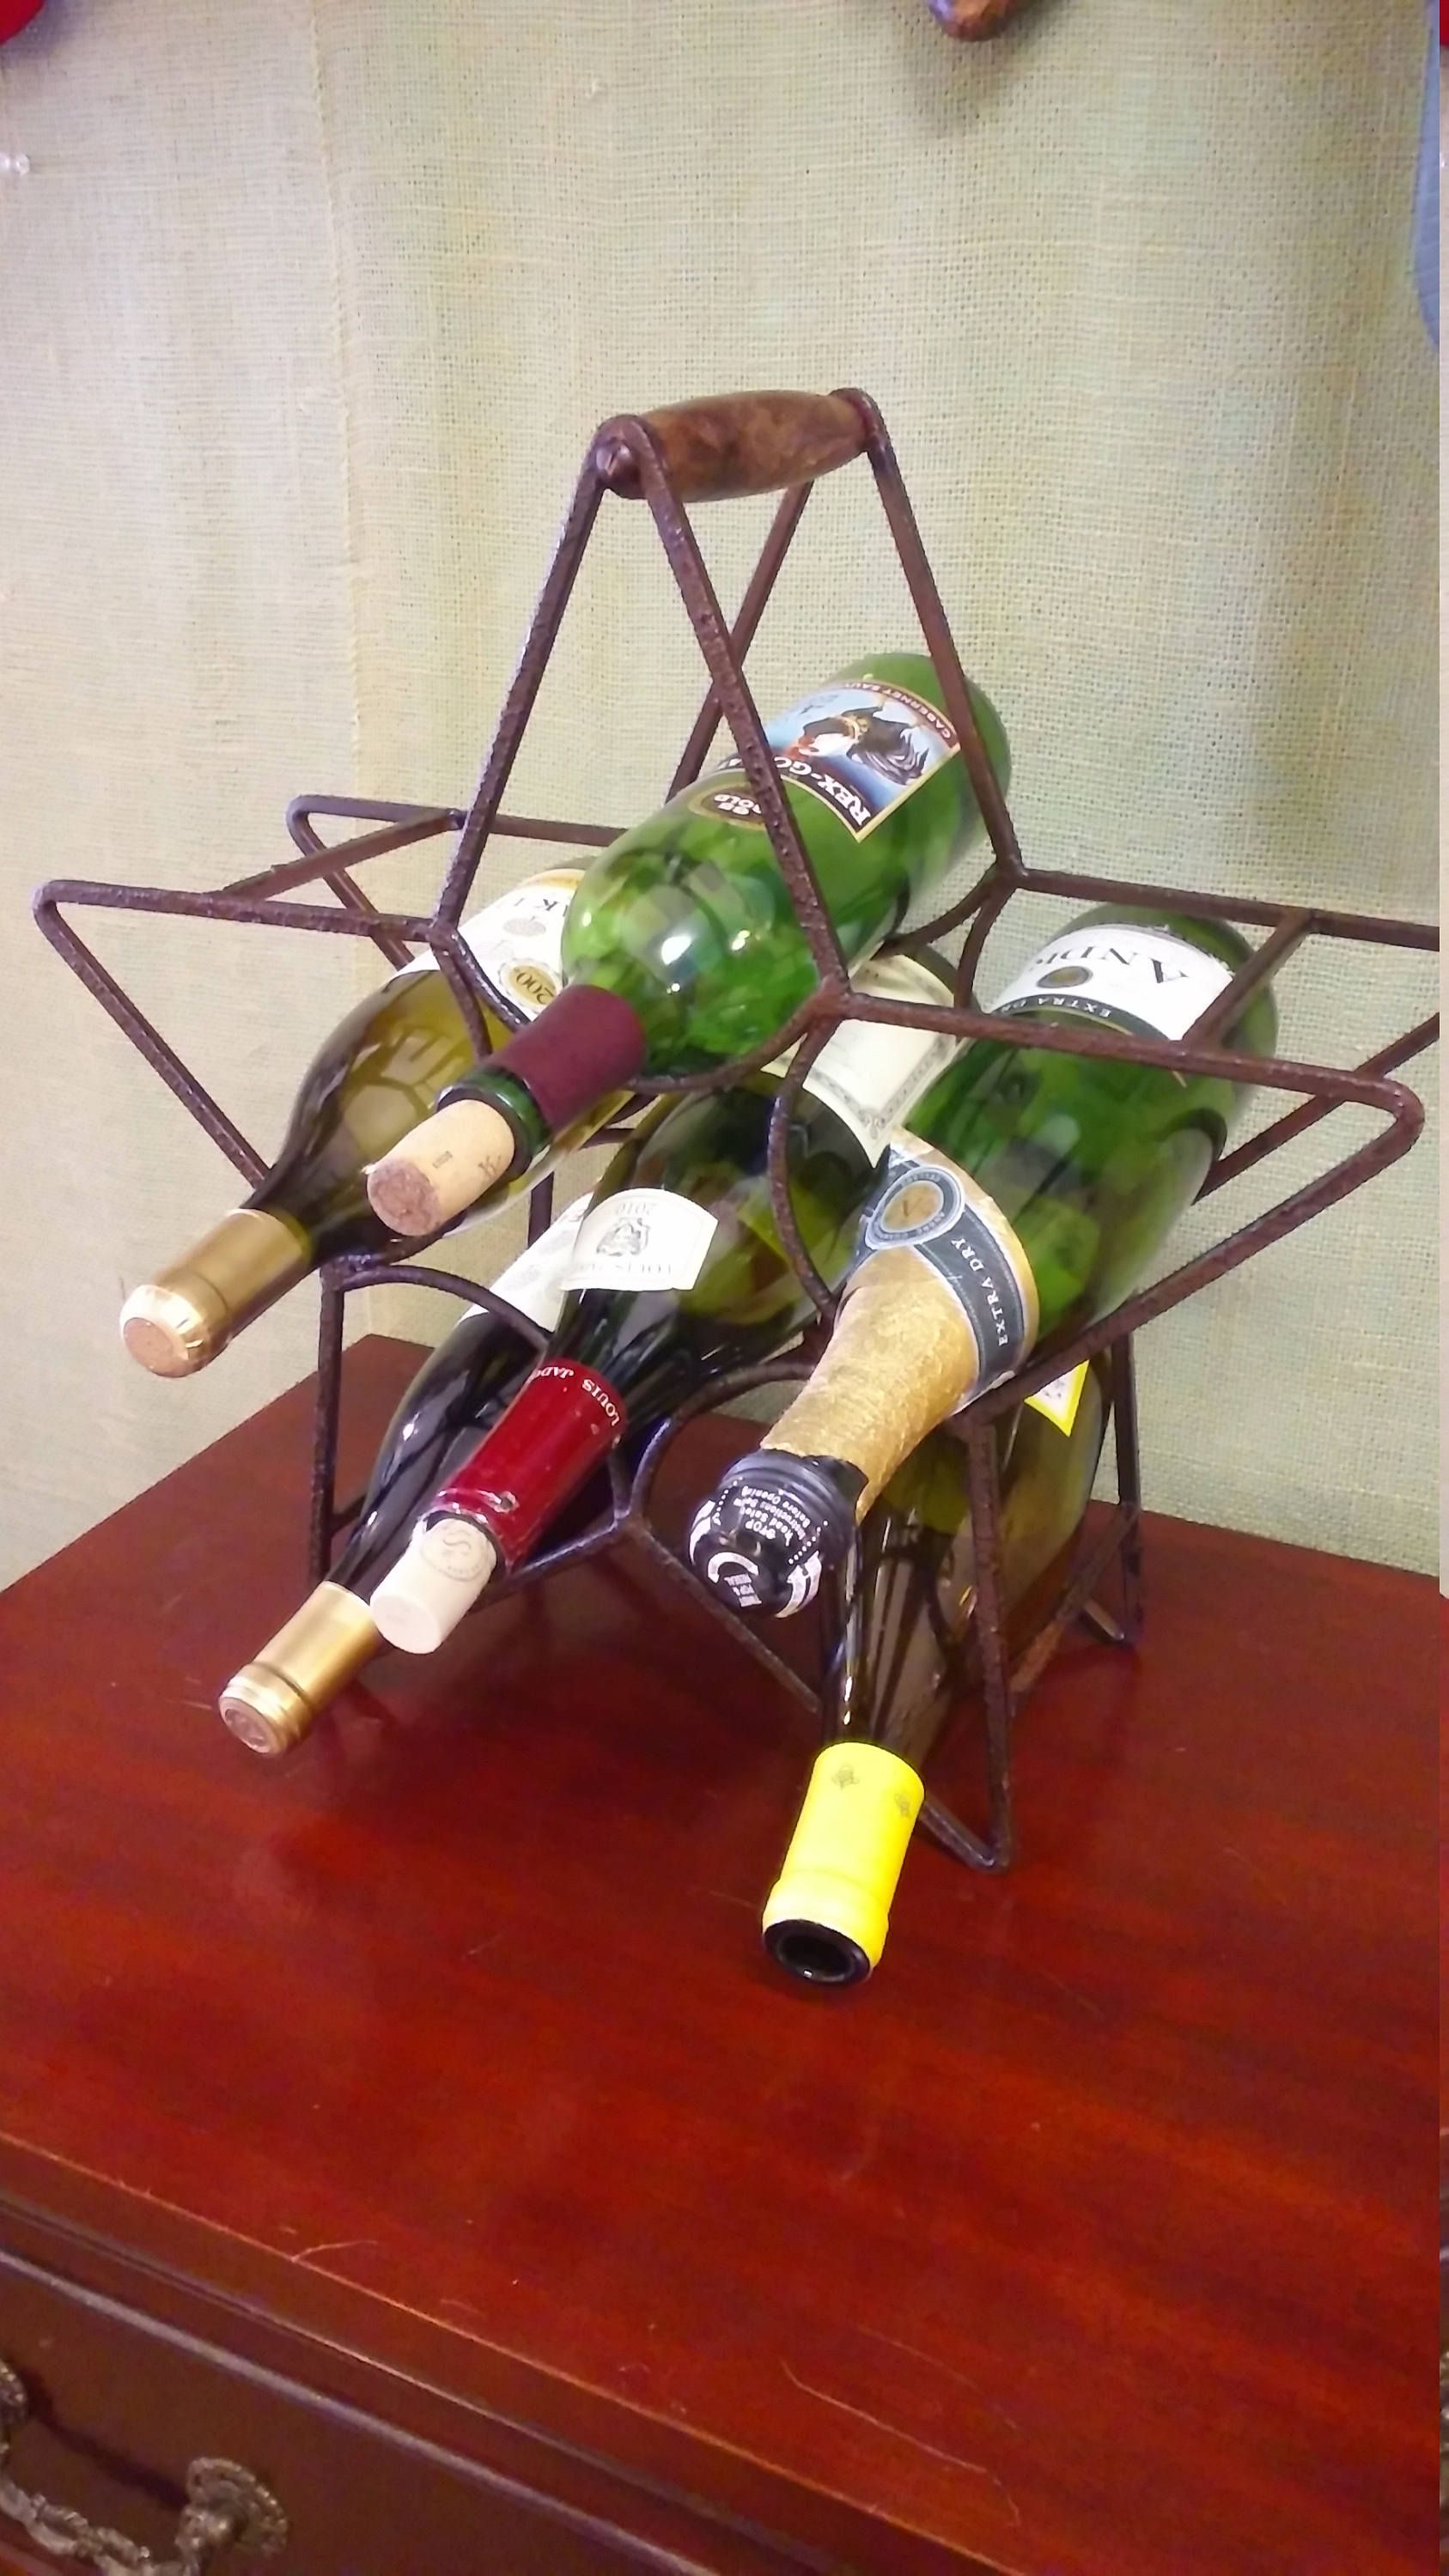 Iron Star Wine Bottle Rack Holder Holds 6 Bottles Etsy Wine Bottle Rack Wine Bottle Wine